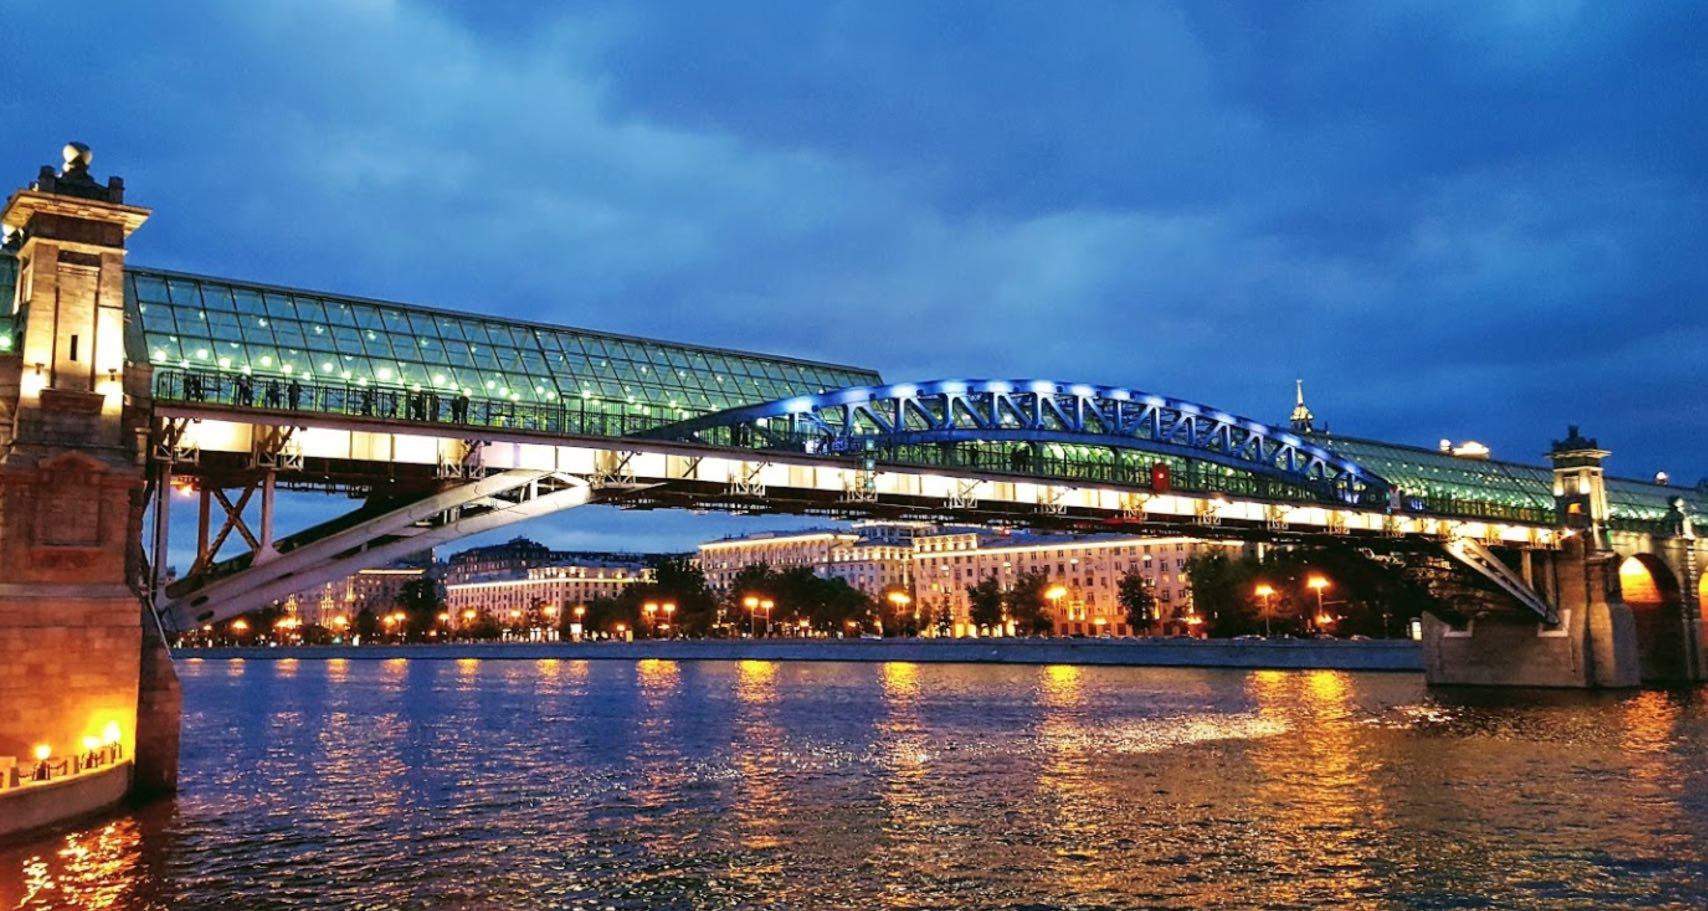 Illuminated Pushkinskiy Bridge